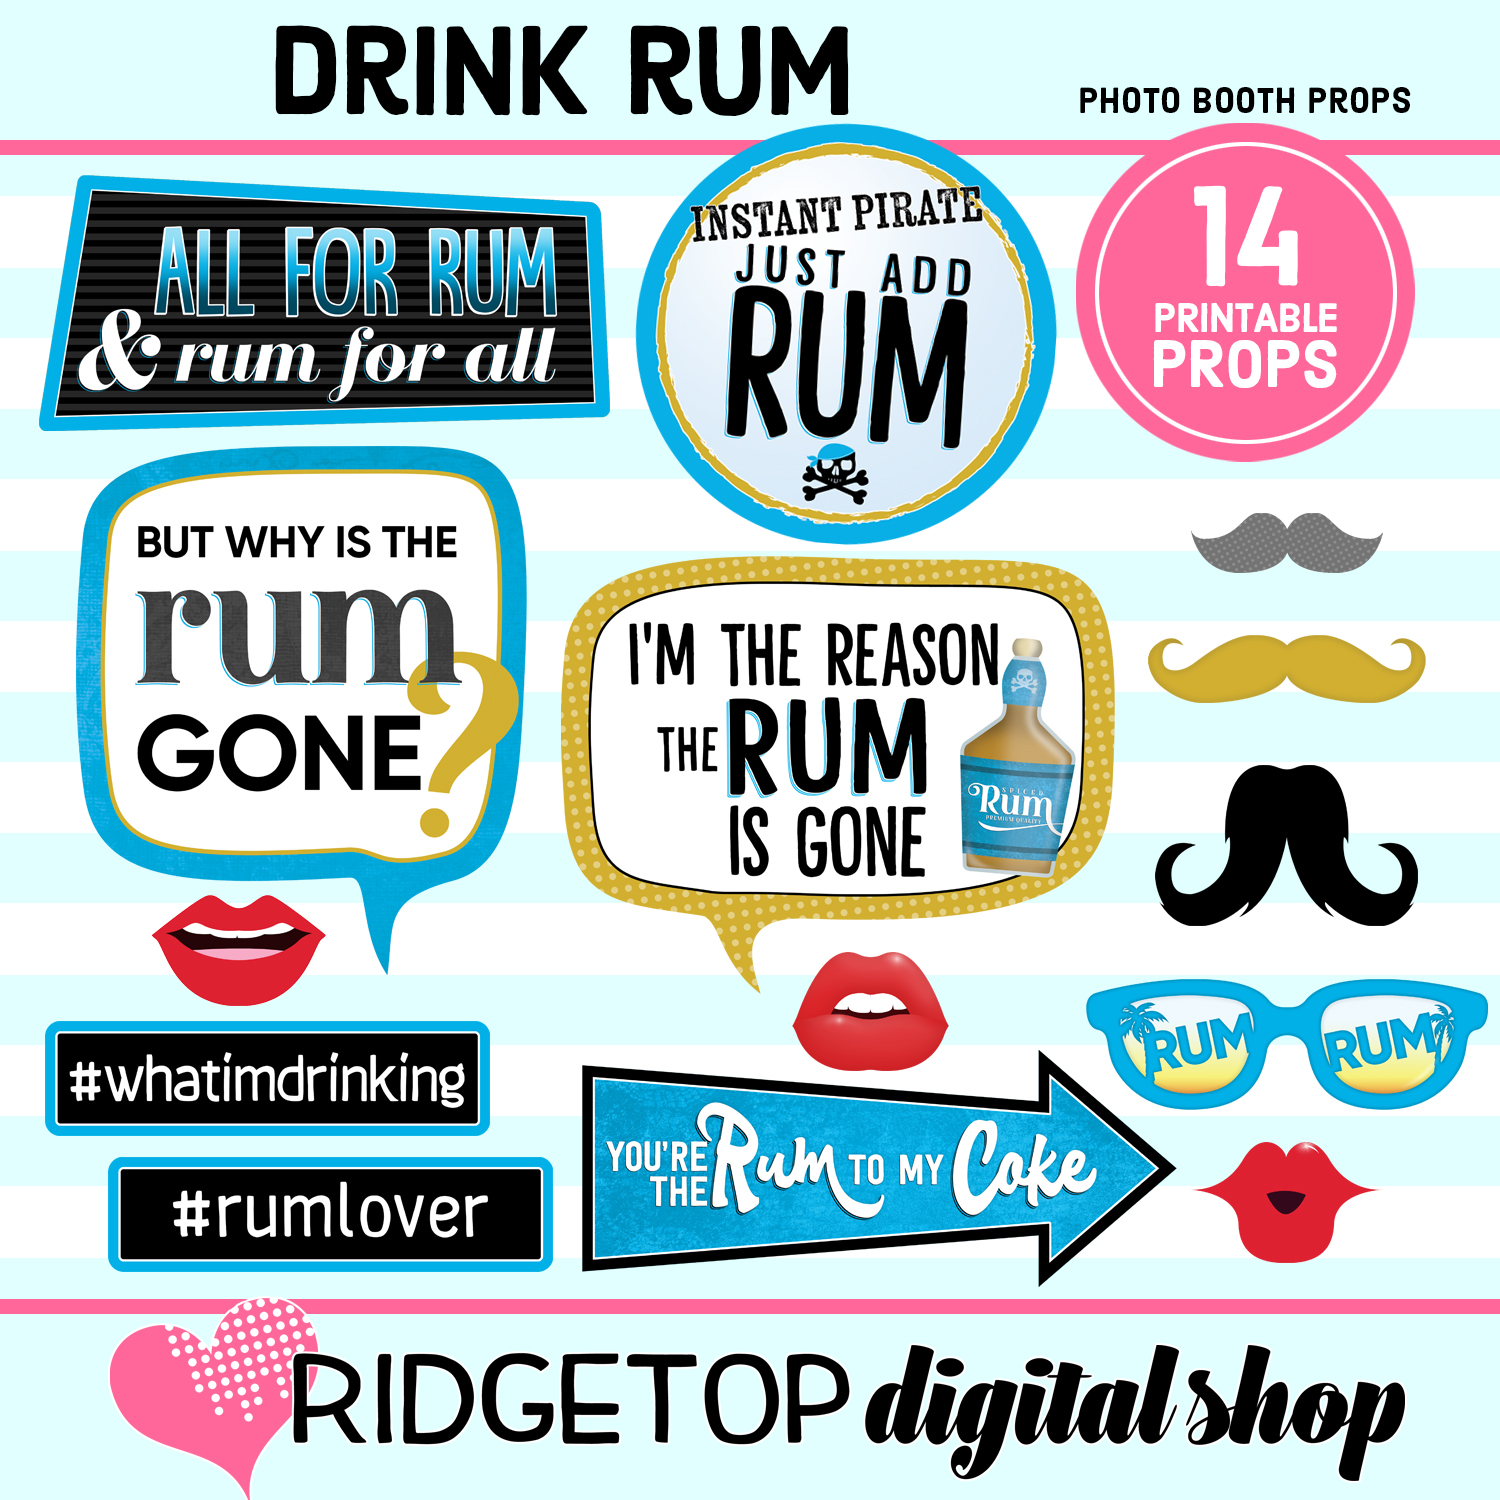 rum Photo Booth Props